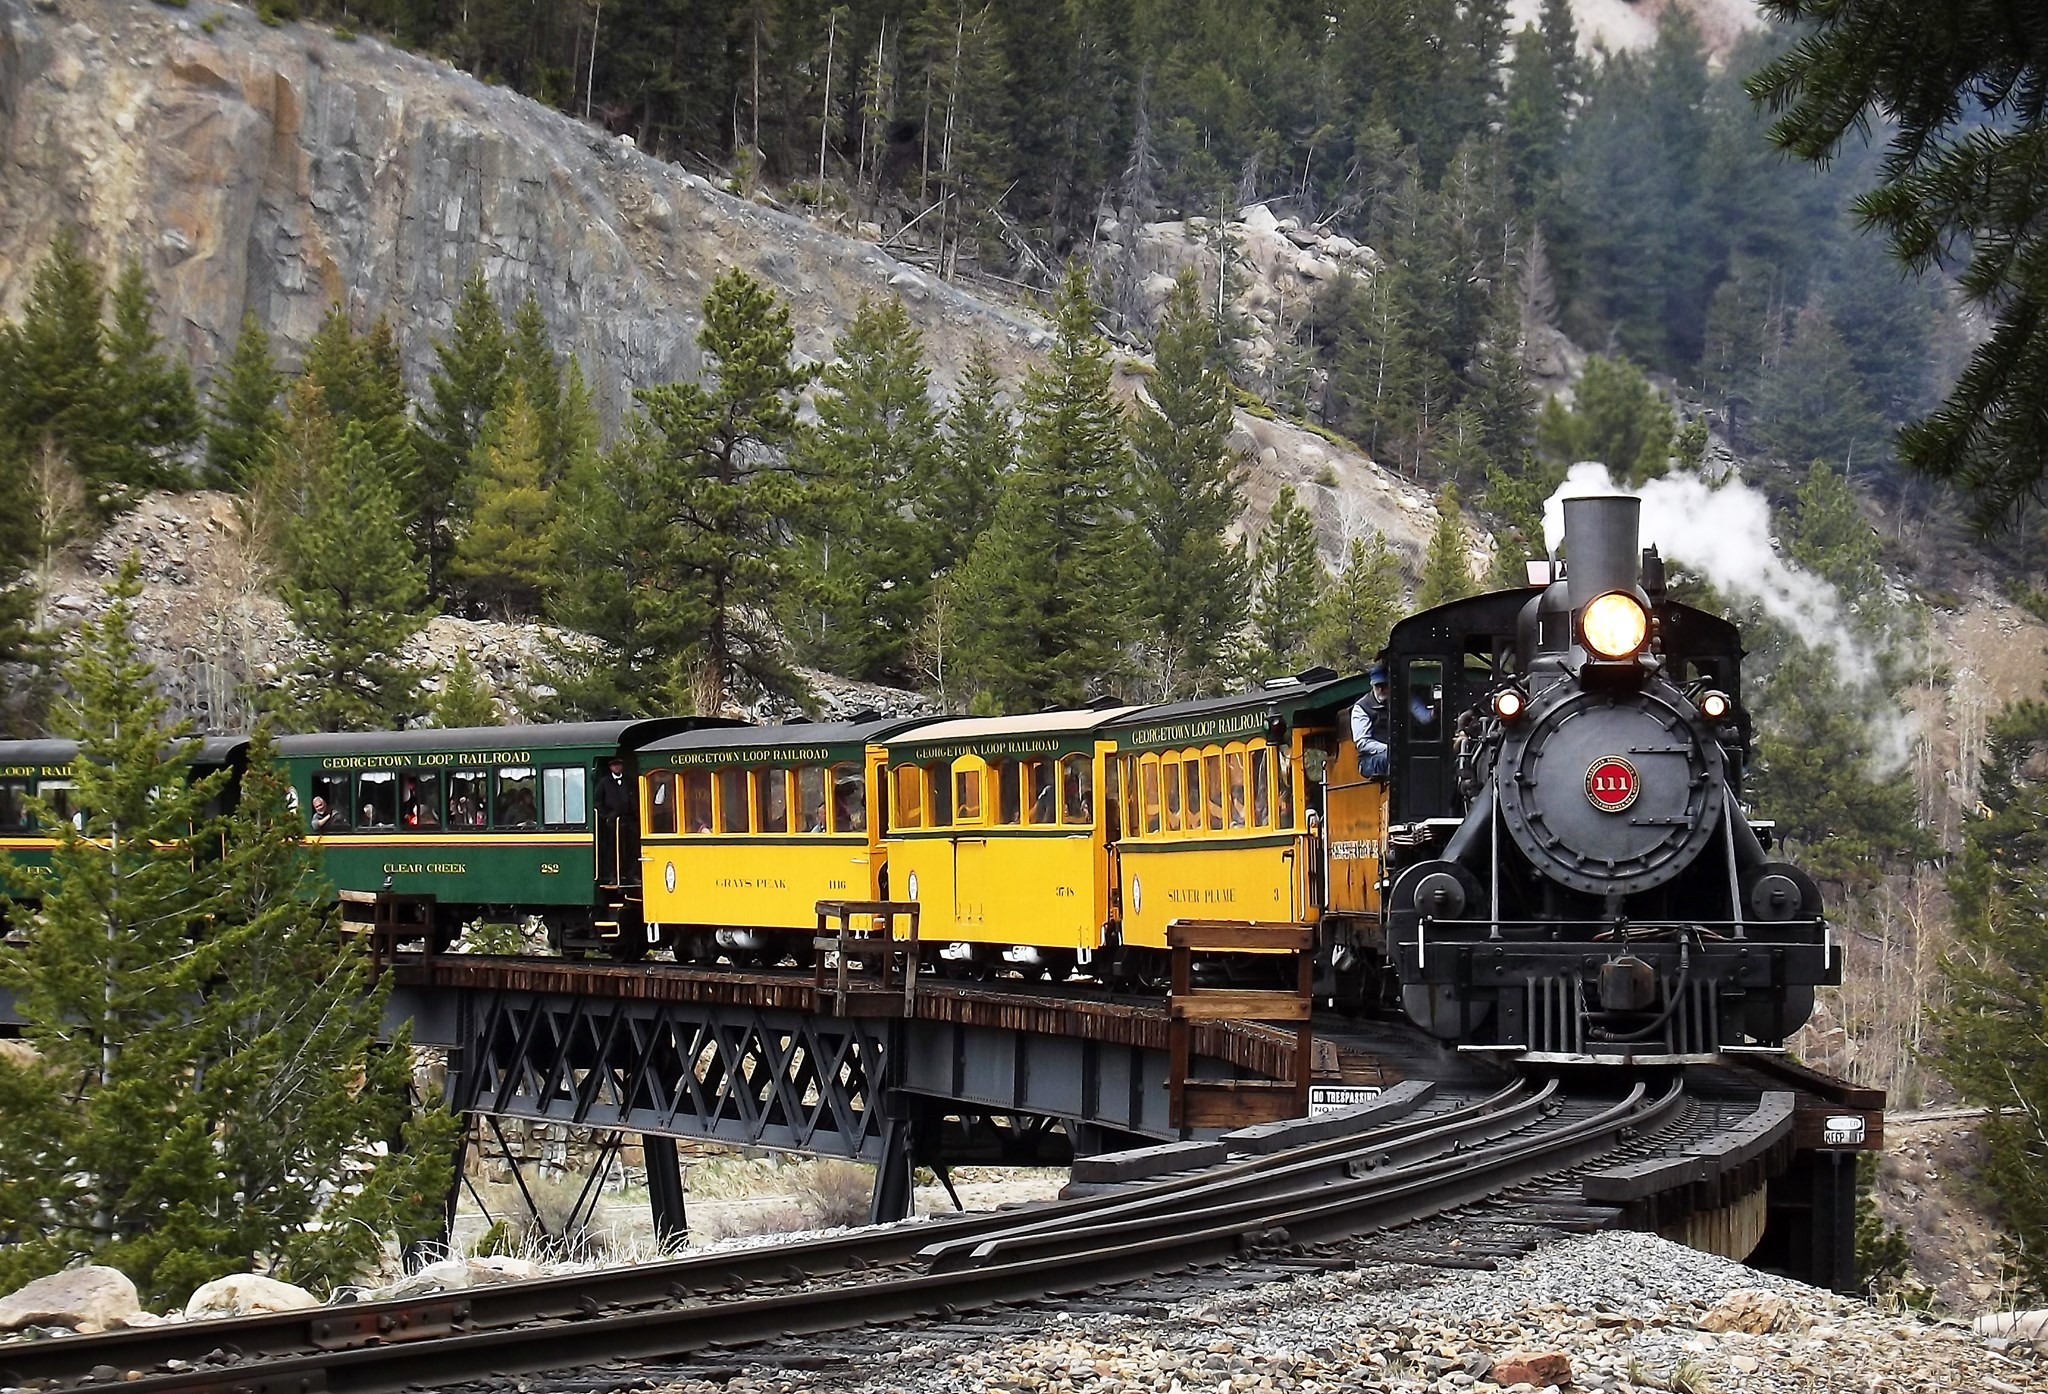 Go For A Socially Distant Ride Through Colorado's Rocky Mountains With The Georgetown Loop